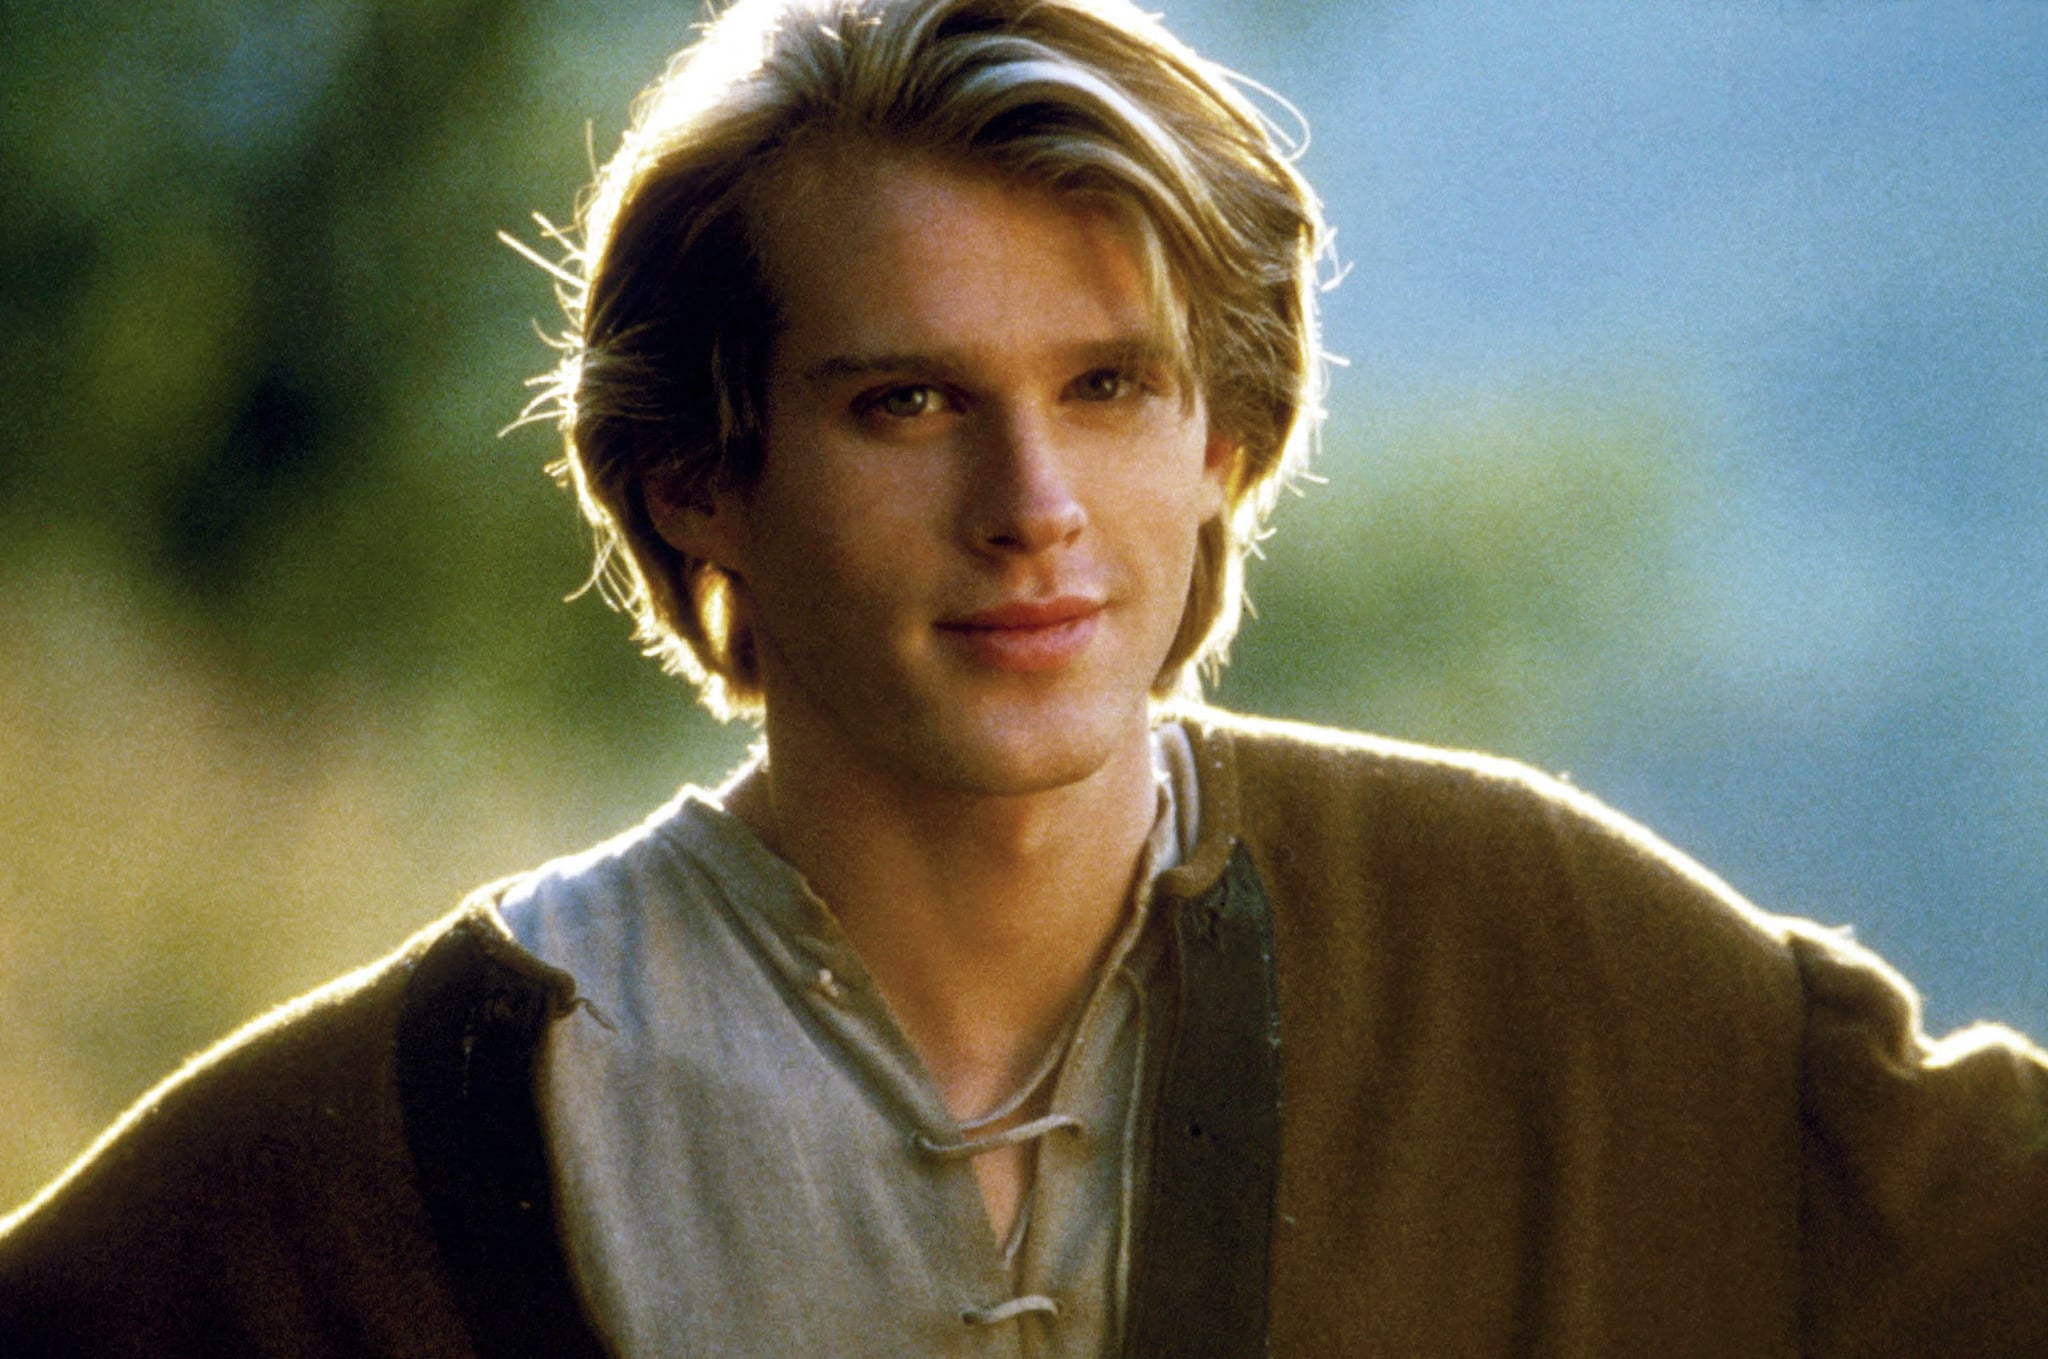 THE PRINCESS BRIDE, Cary Elwes, 1987, TM & Copyright  20th Century Fox Film Corp./courtesy Everett Collection, PRB 031, Photo by: Everett Collection (76914.jpg)